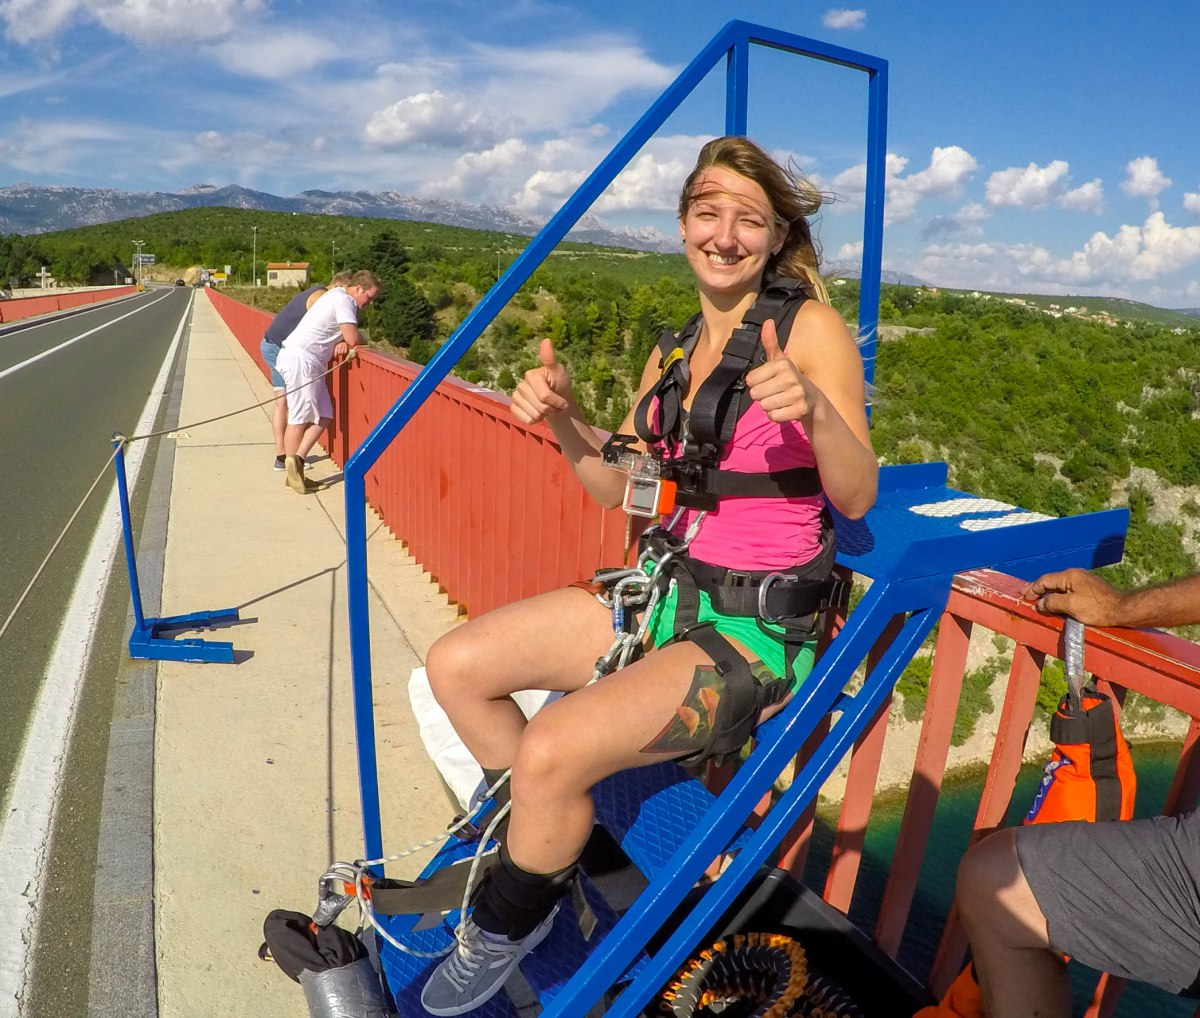 A girl preparing to bungee jump from Maslenica bridge in Croatia on a beautiful sunny day